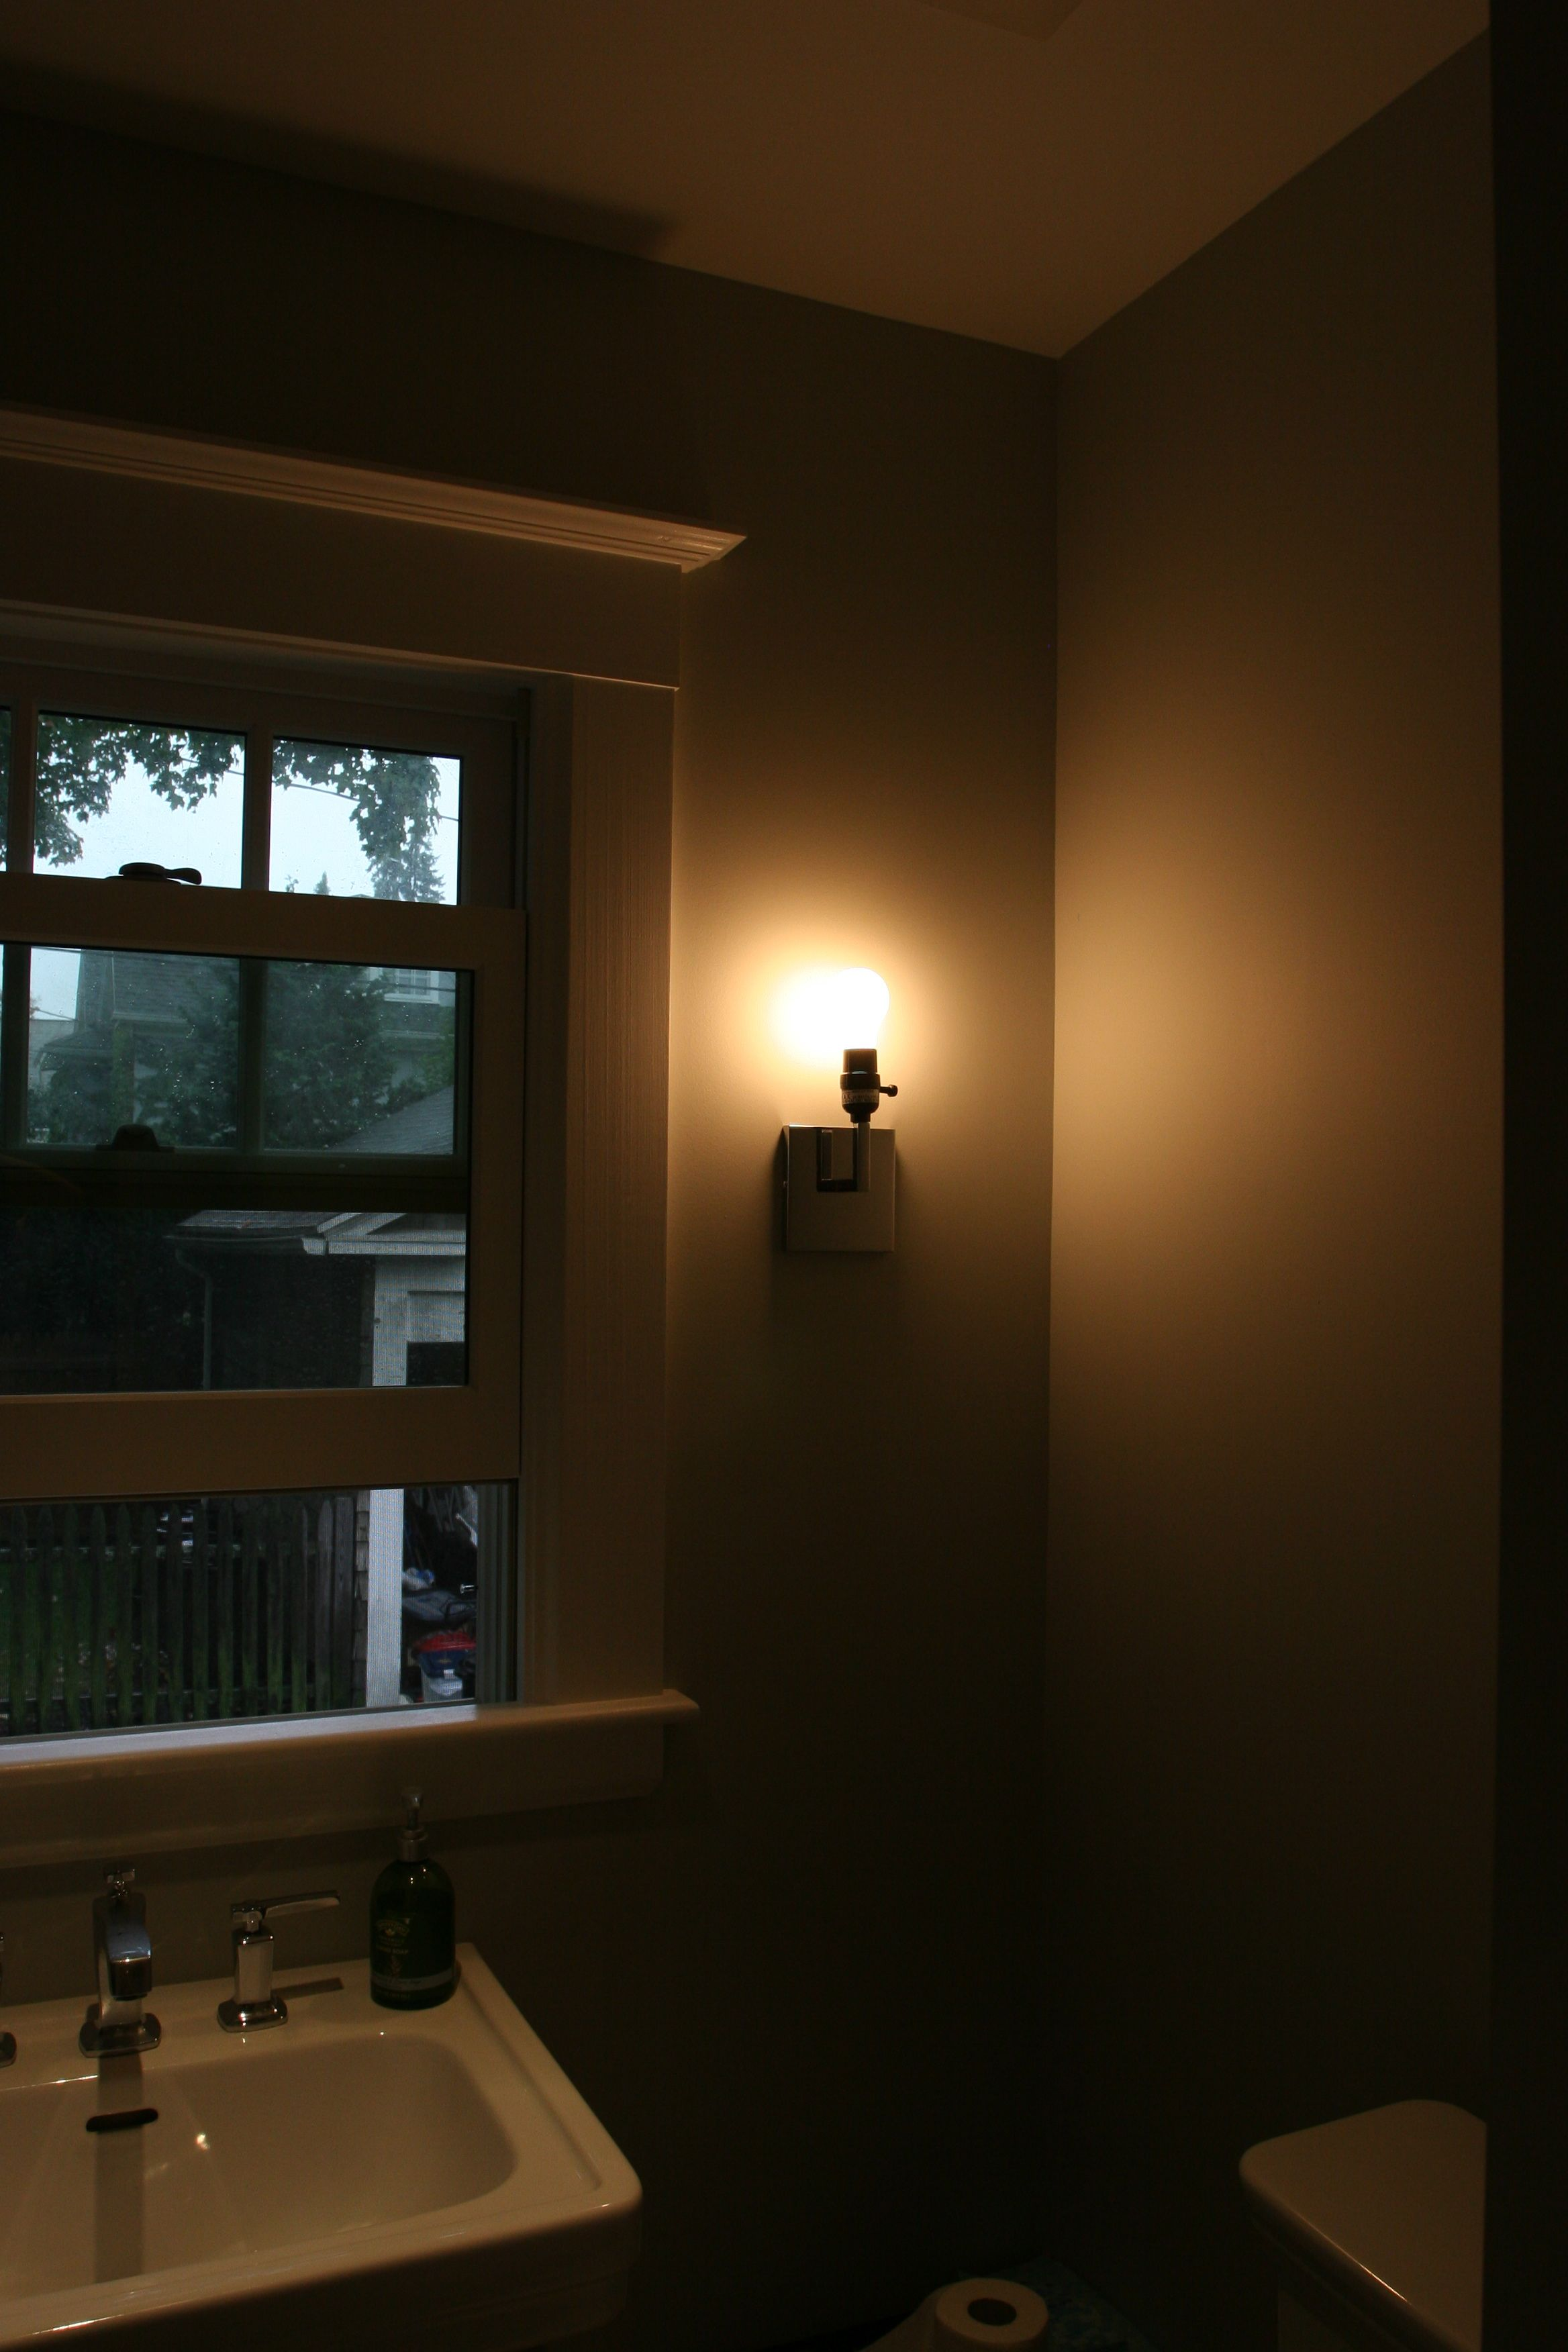 Powder room sconce! The shade is still all wrapped up for protection.